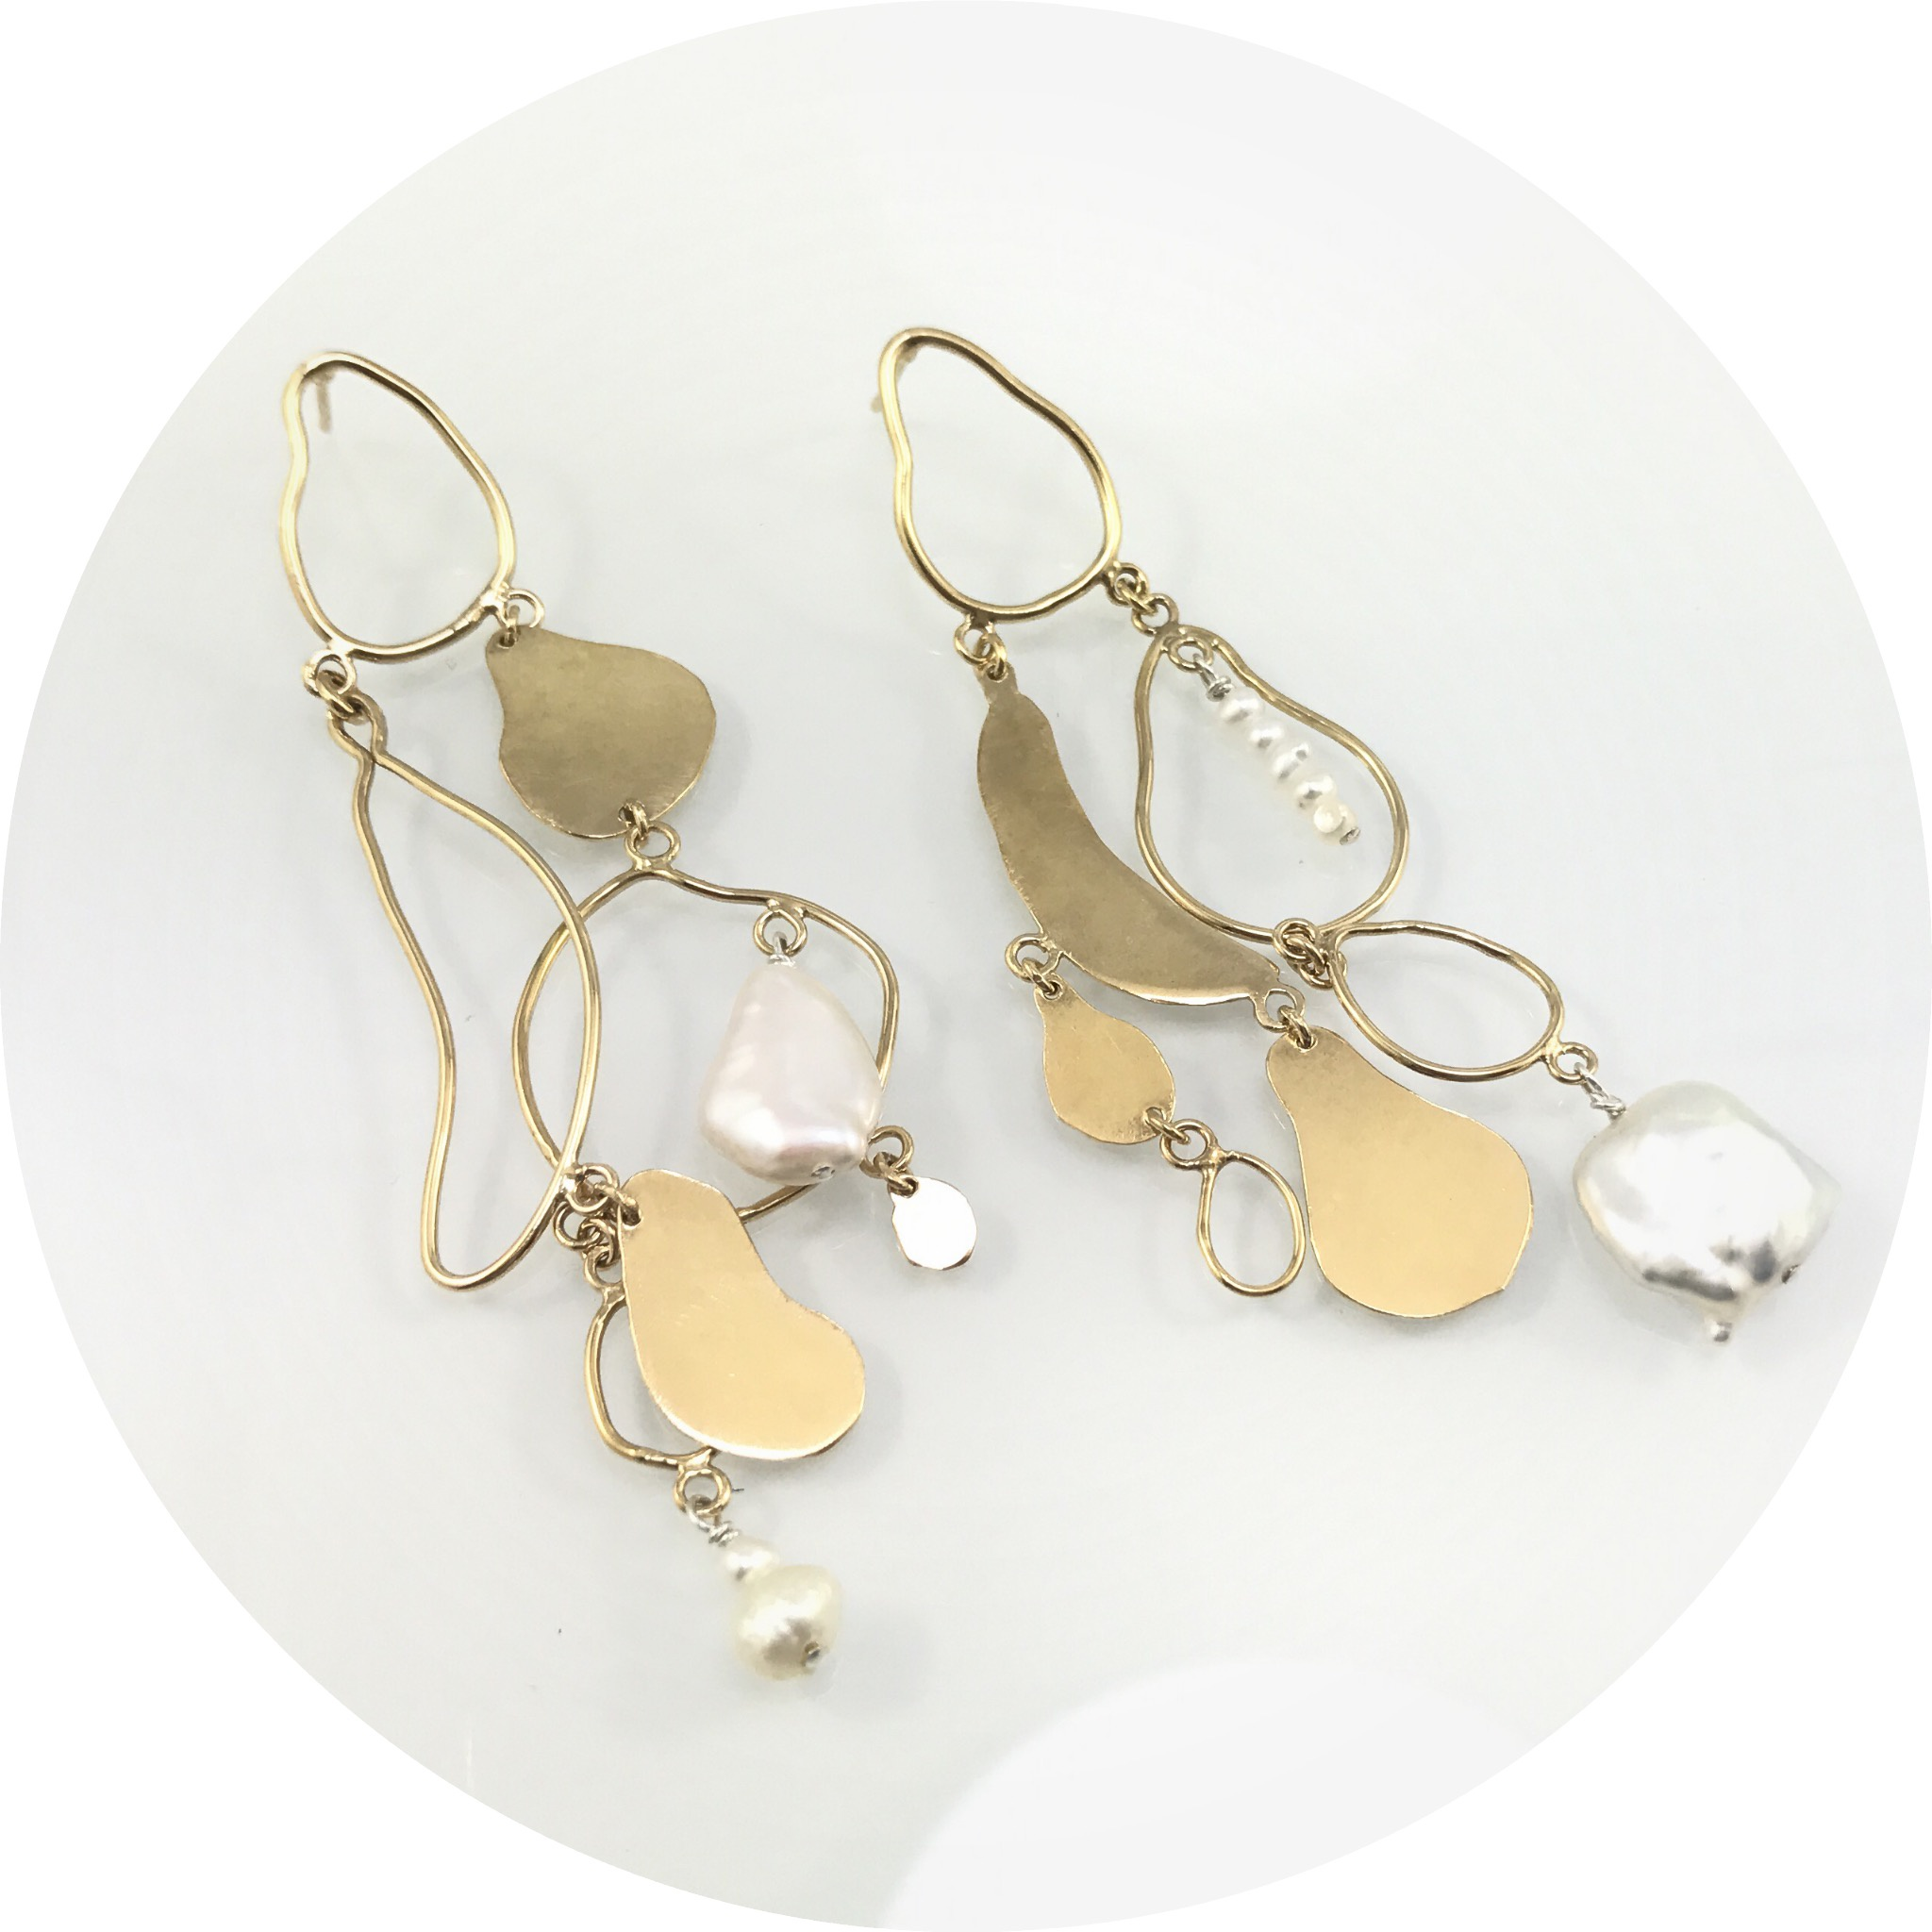 Ada Hodgson - Memories of Mission Beach 1, gold plated sterling silver and fresh water pearl drop earrings